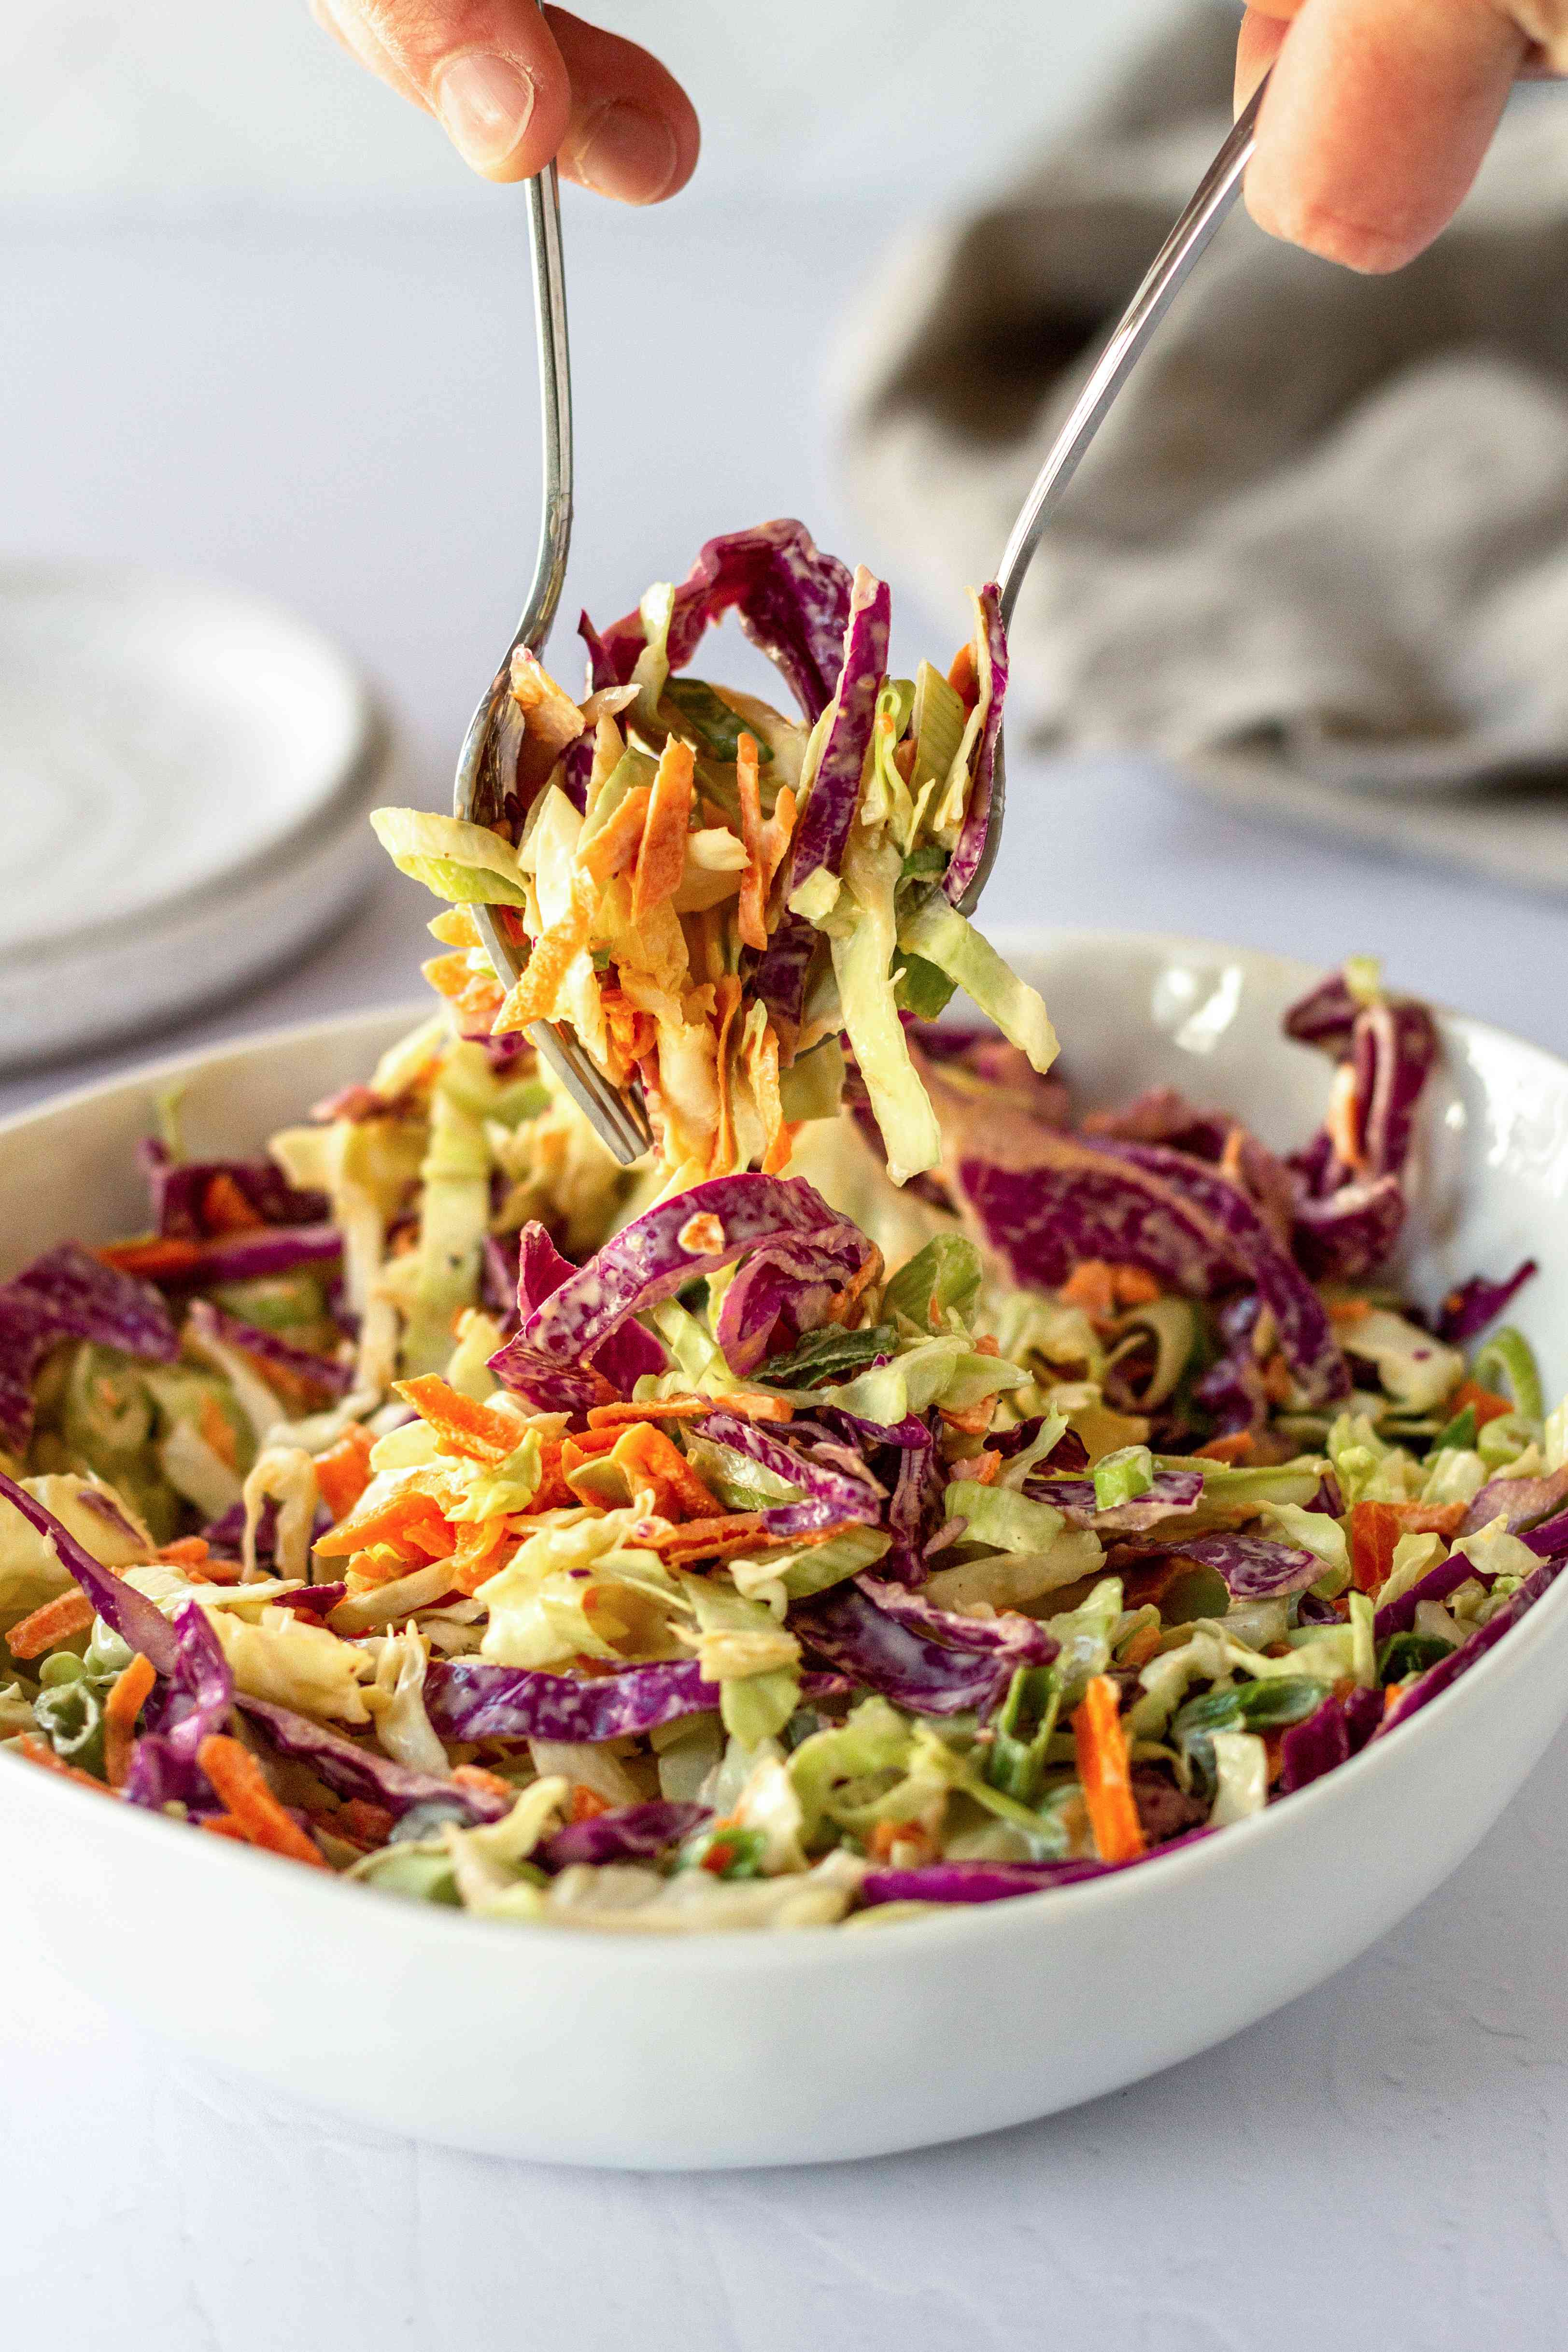 Forks lifting bright cabbage coleslaw out of a white bowl.